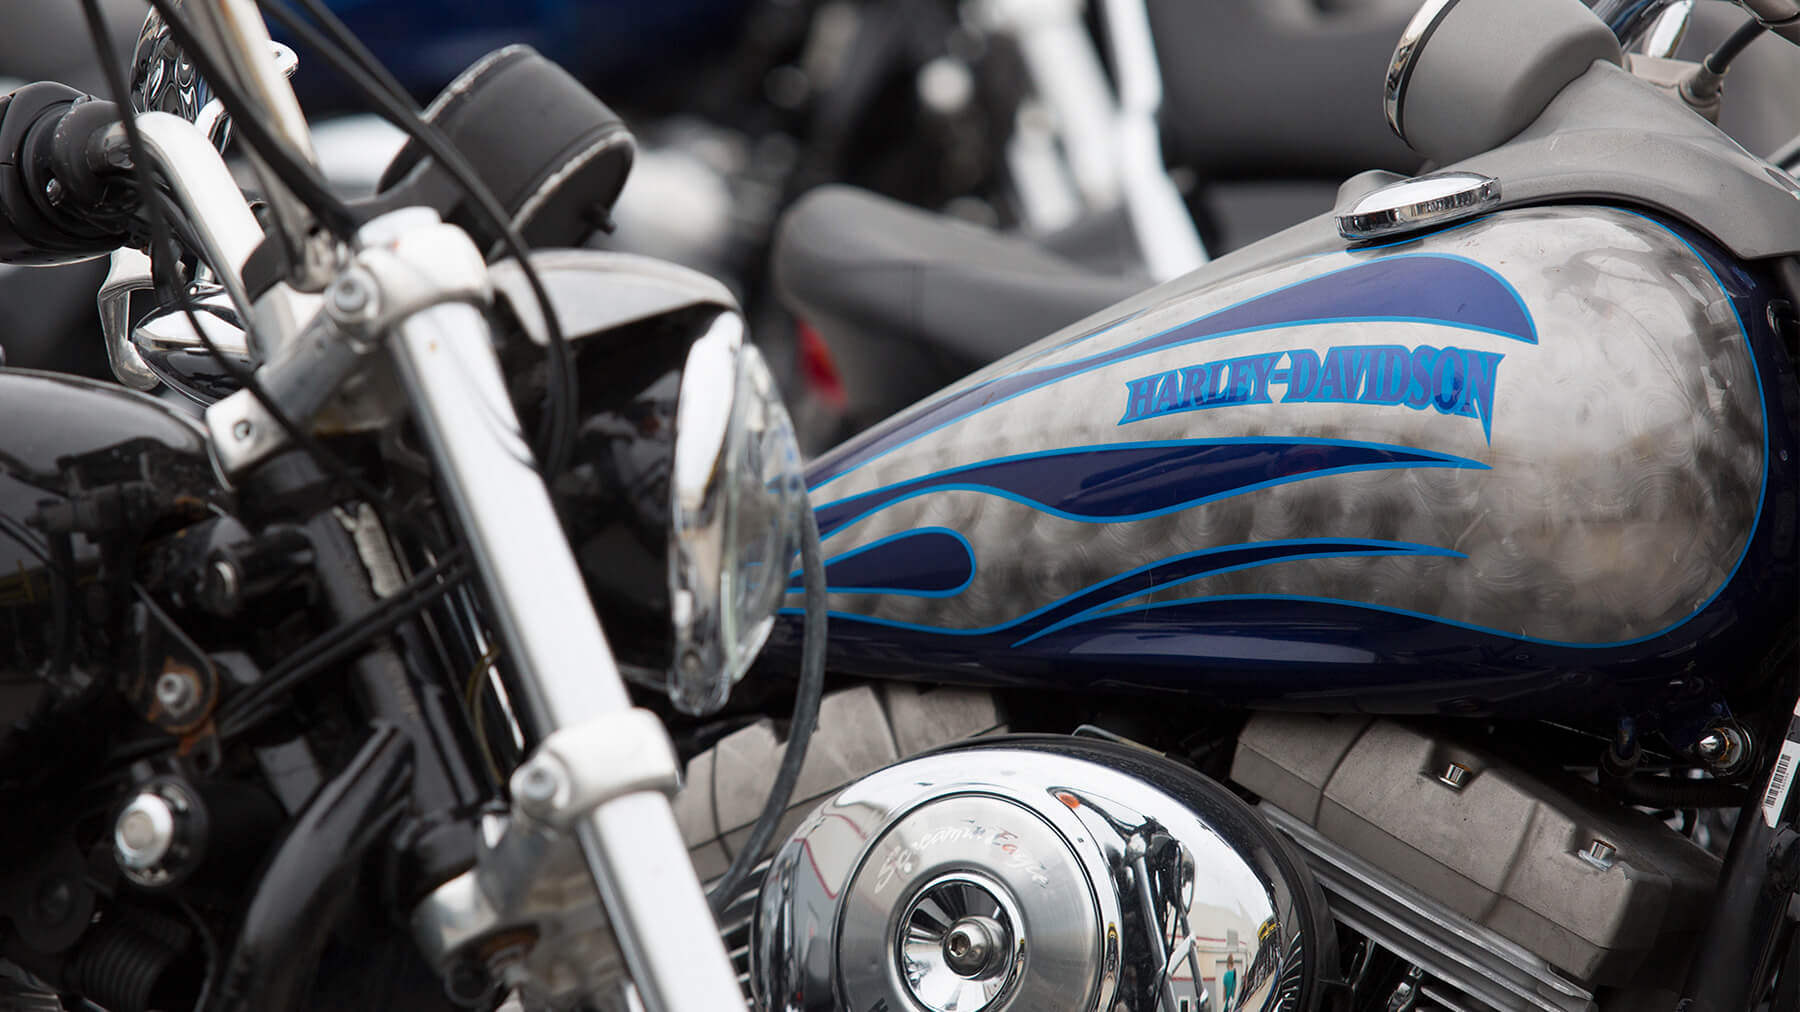 Motorcycle_Gallery_Harley_0P6A5766